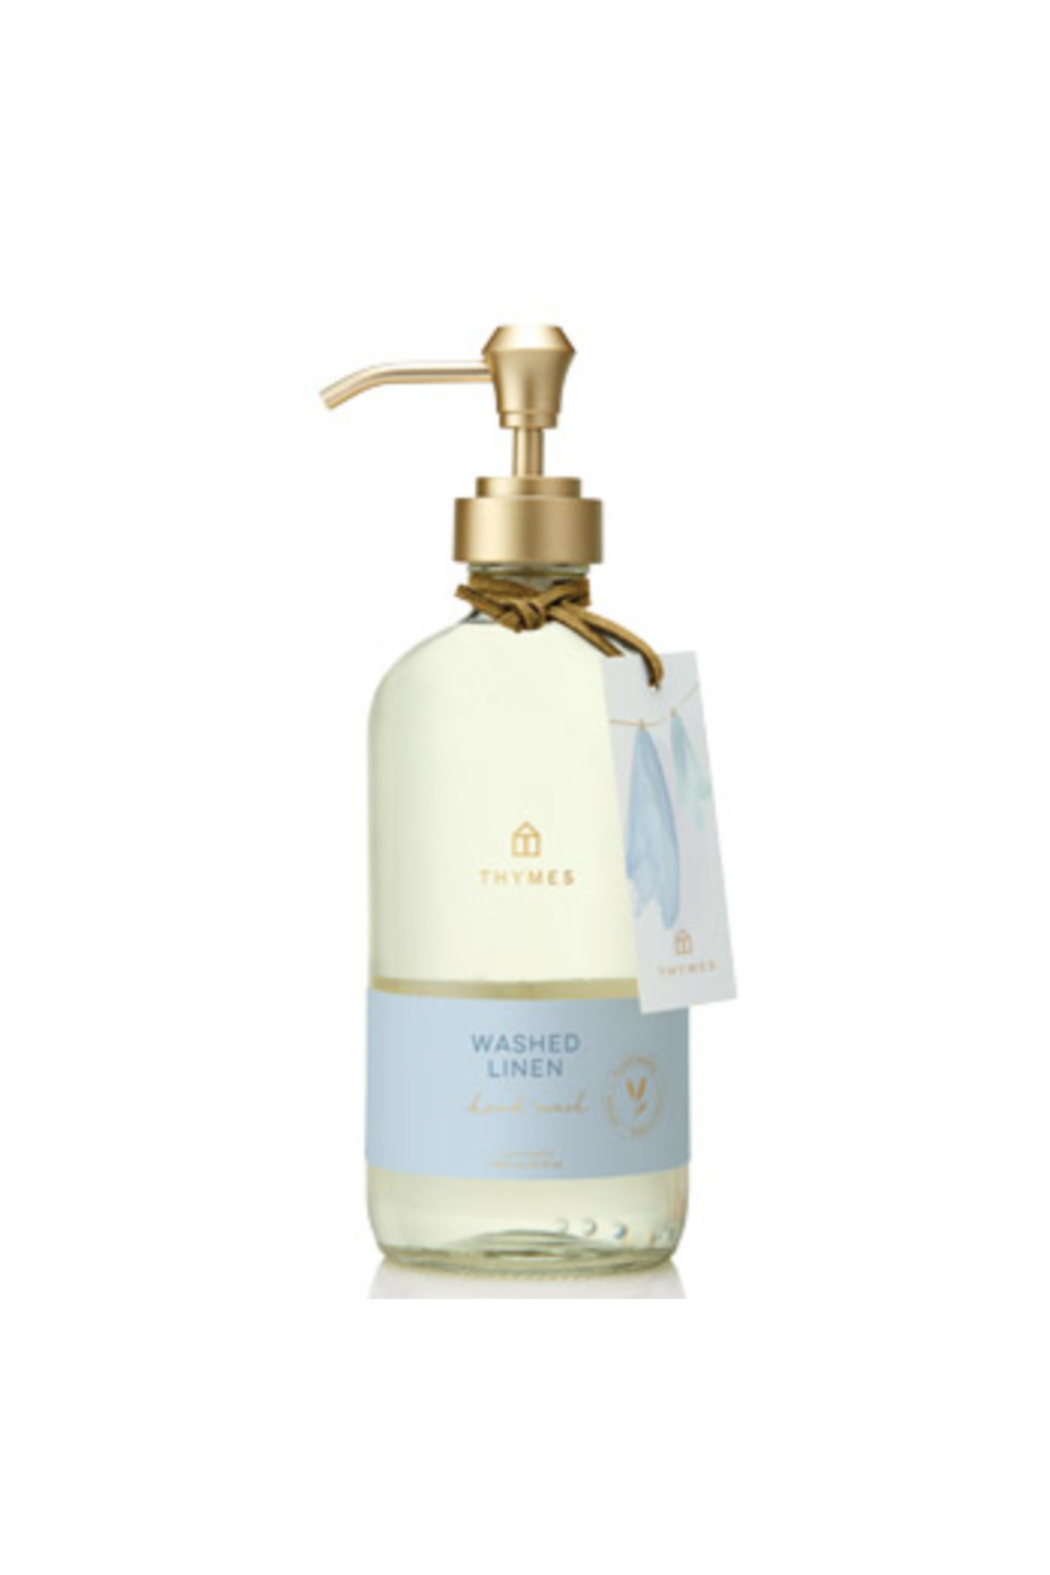 Thymes 15 OZ WASHED LINEN HAND WASH - Main Image